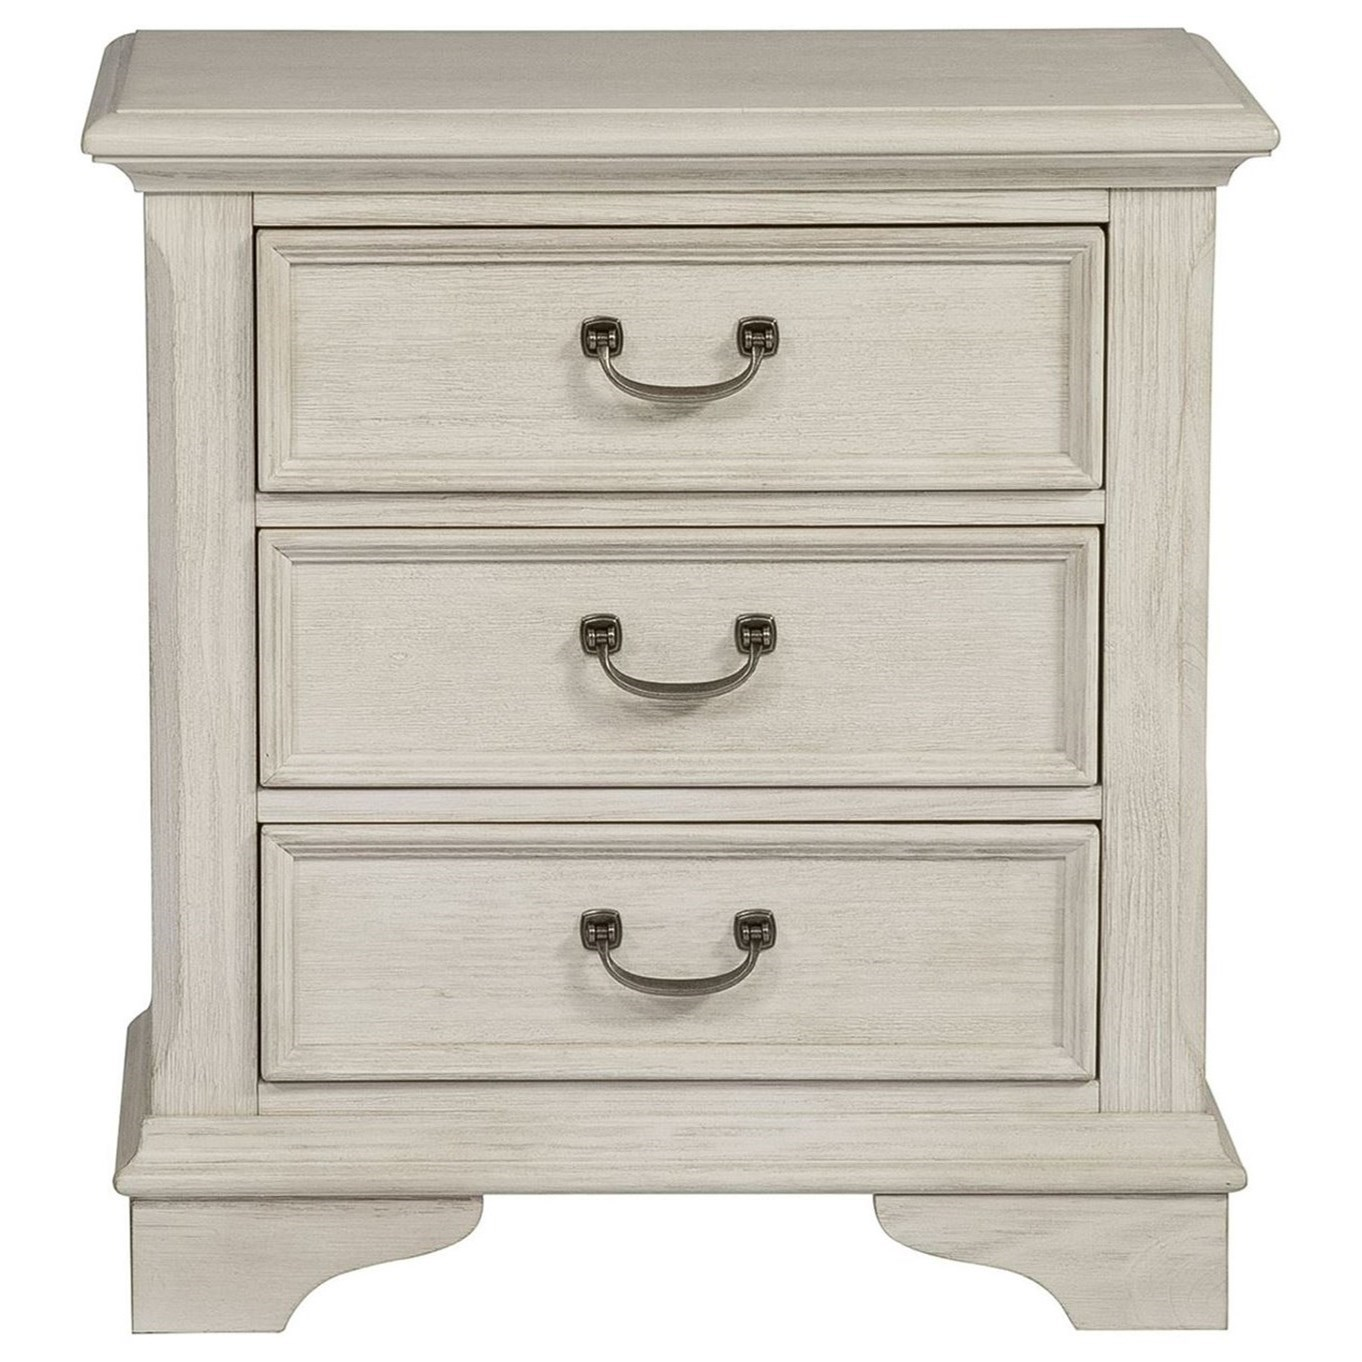 Bayside Bedroom 3 Drawer Night Stand by Liberty Furniture at Standard Furniture